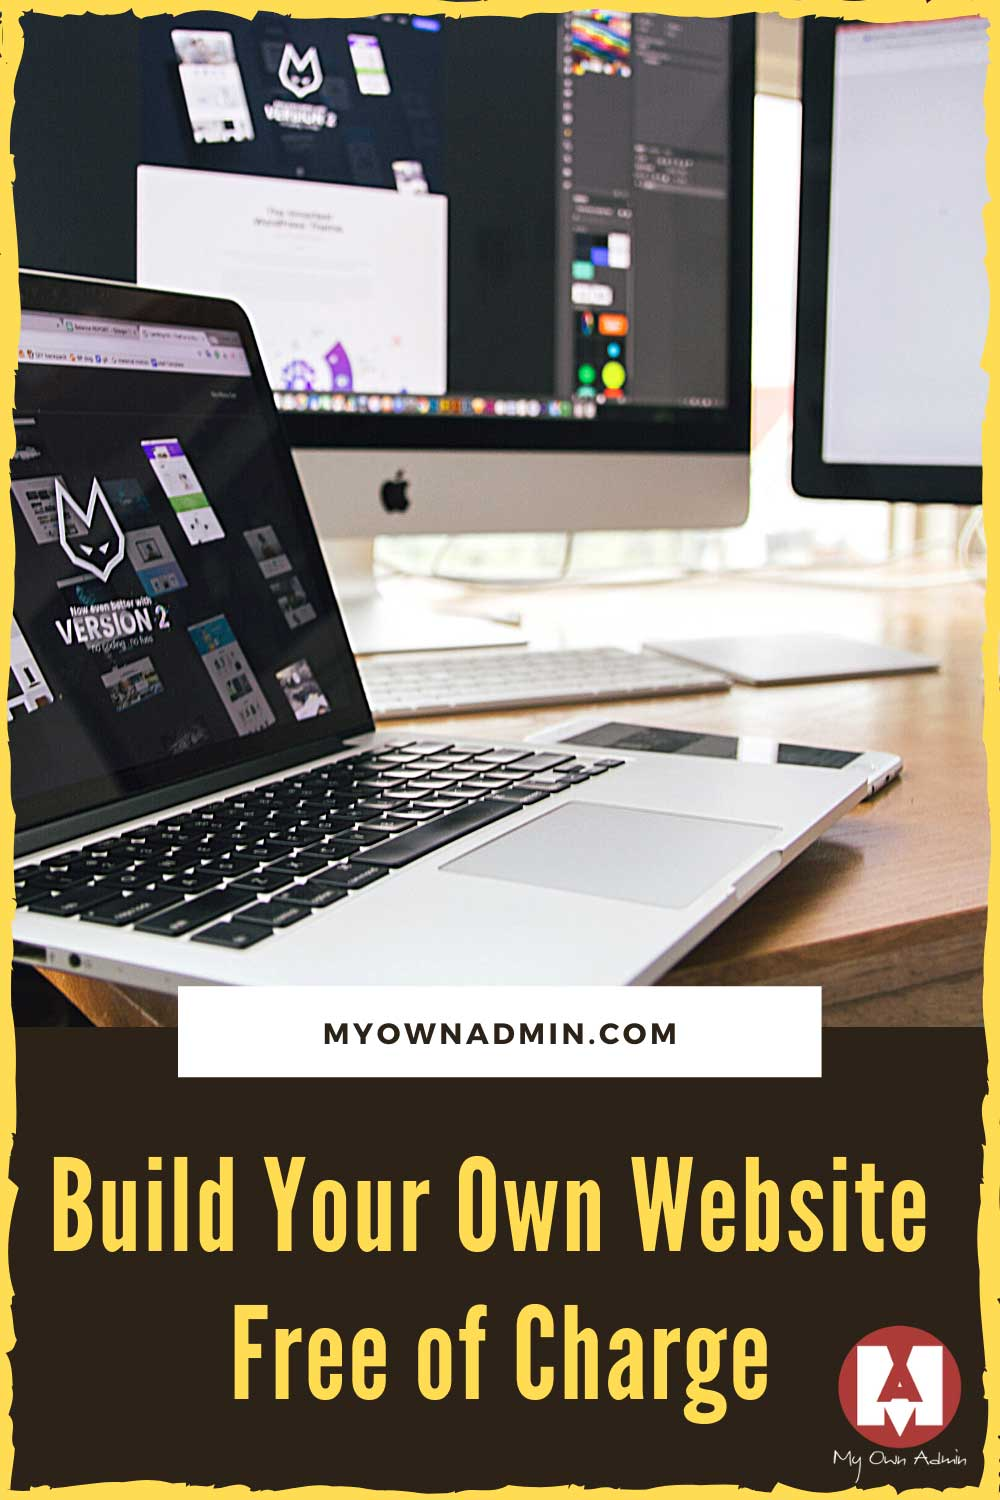 Build Your Own Website Free of Charge